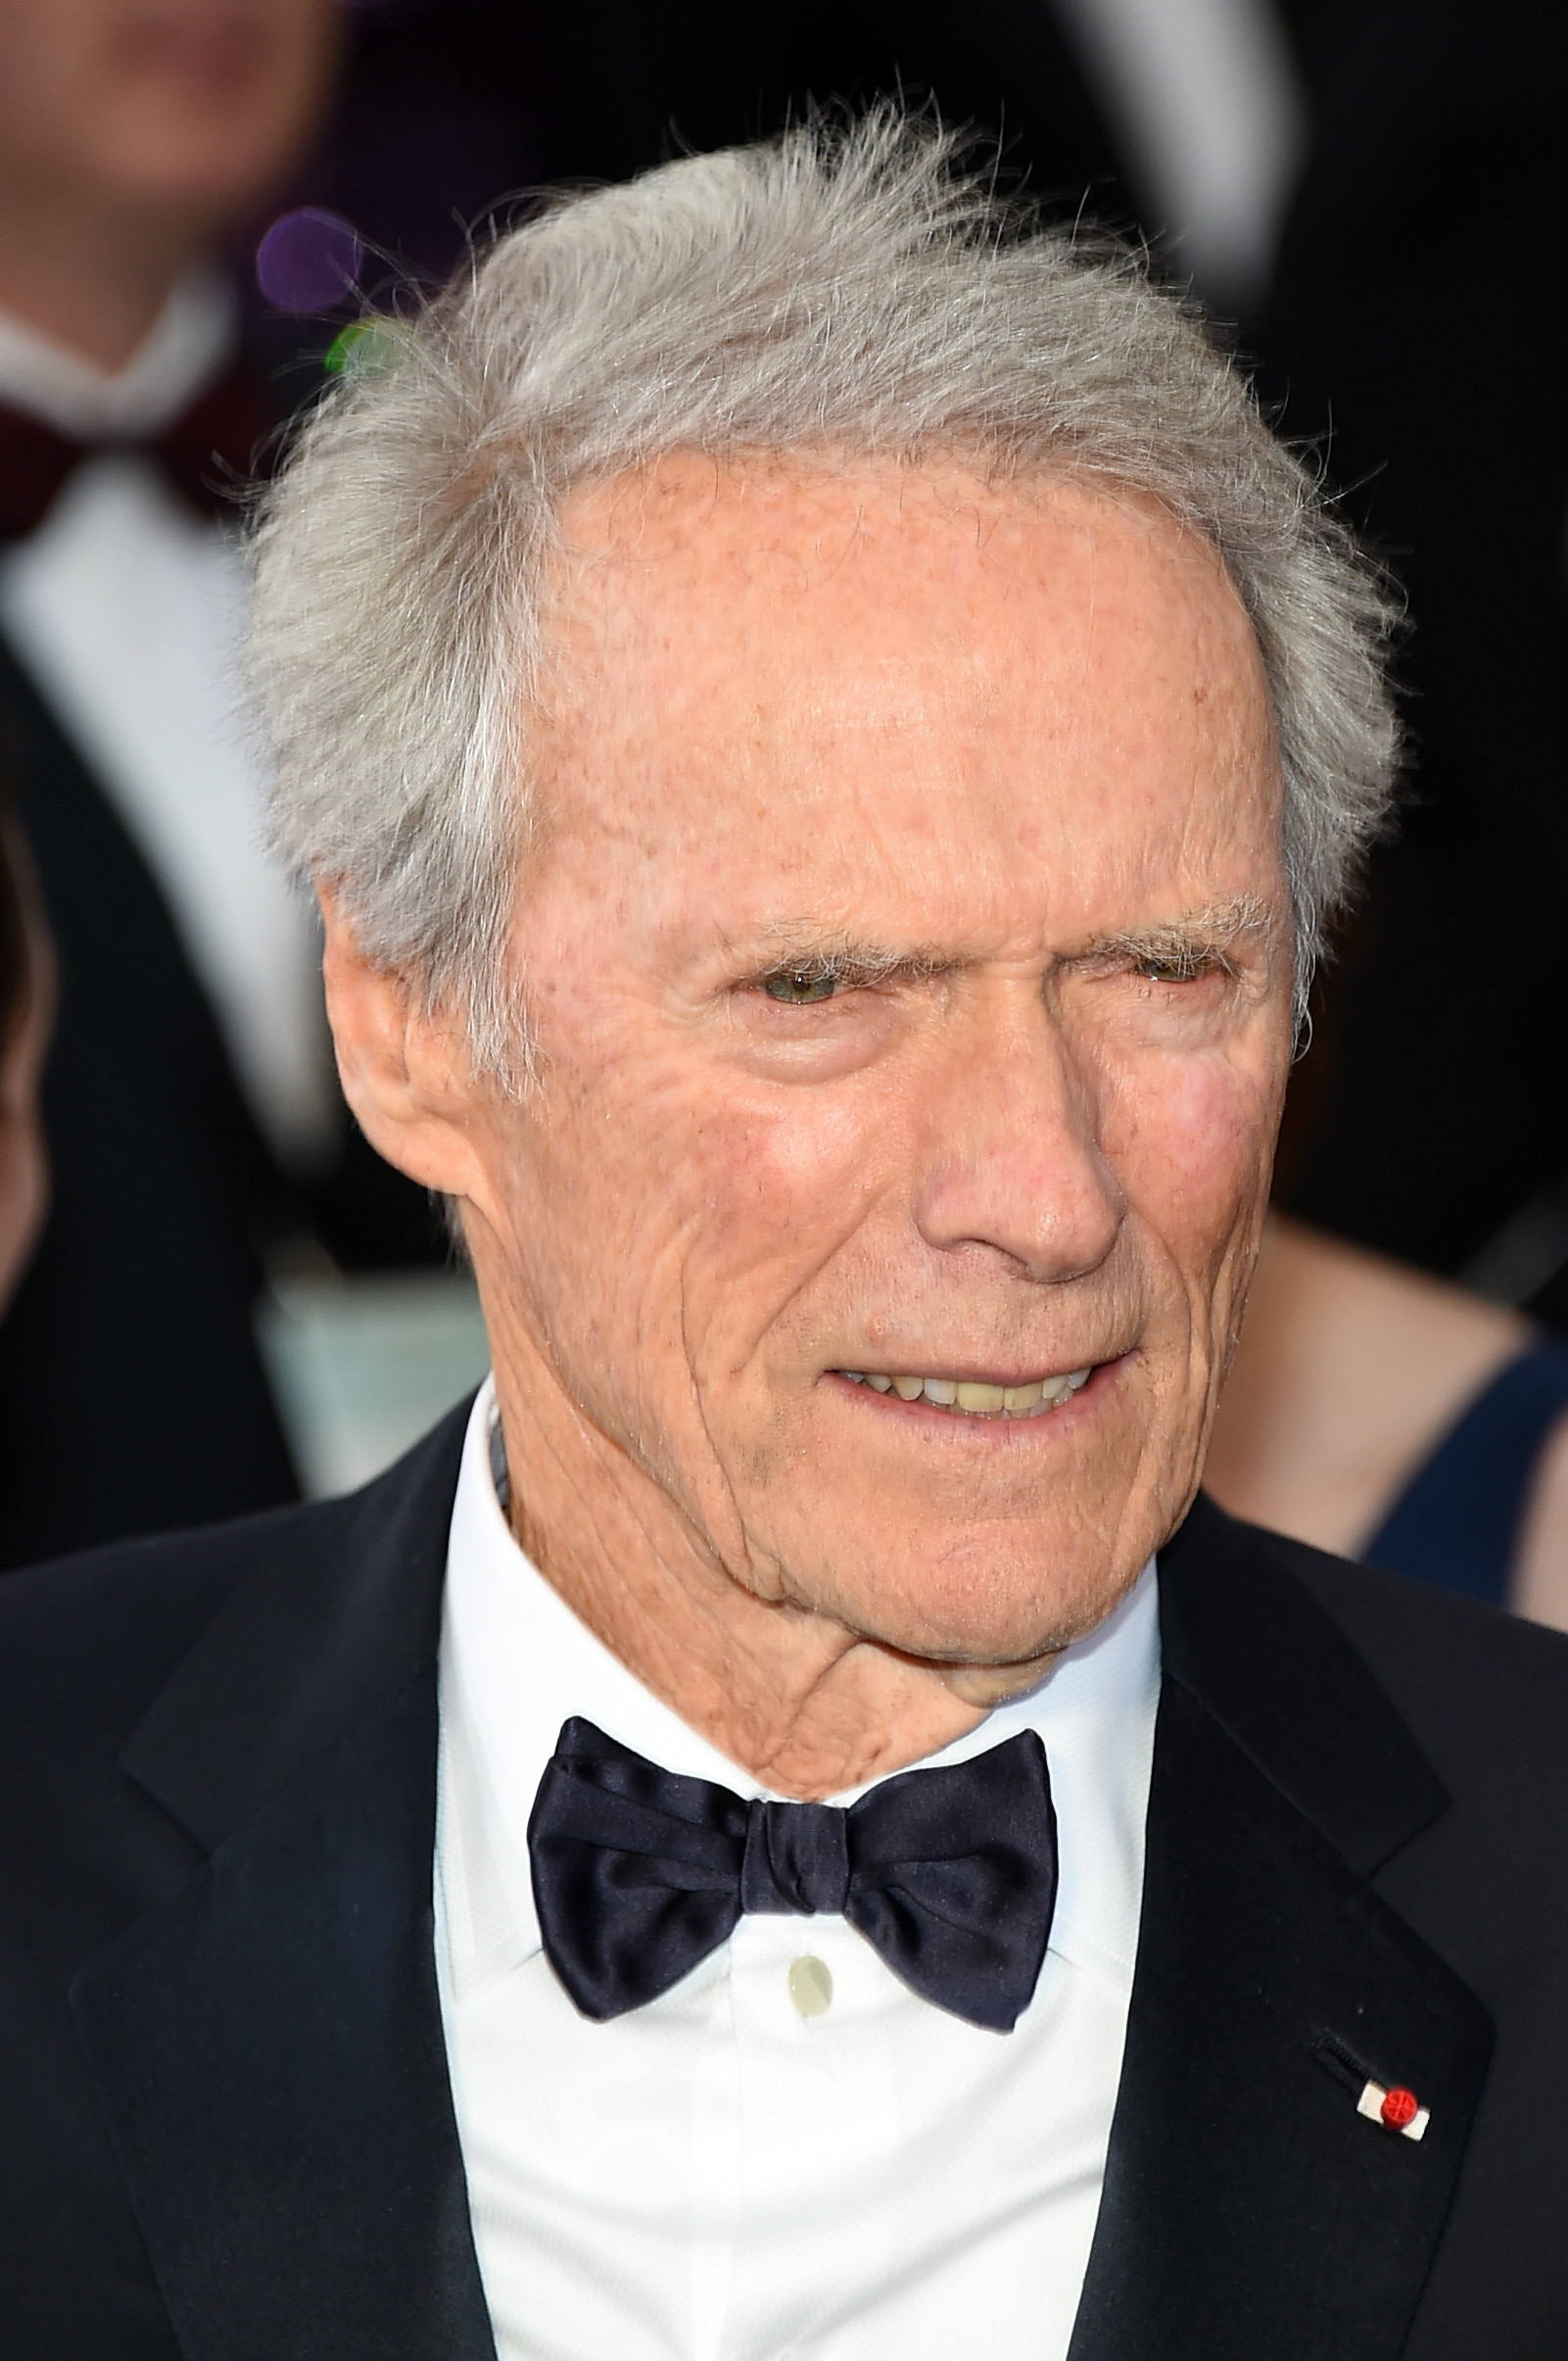 Actor/director Clint Eastwood attends the 87th Annual Academy Awards at Hollywood & Highland Center on February 22, 2015 in Hollywood, California.  (Photo by Ethan Miller/WireImage)